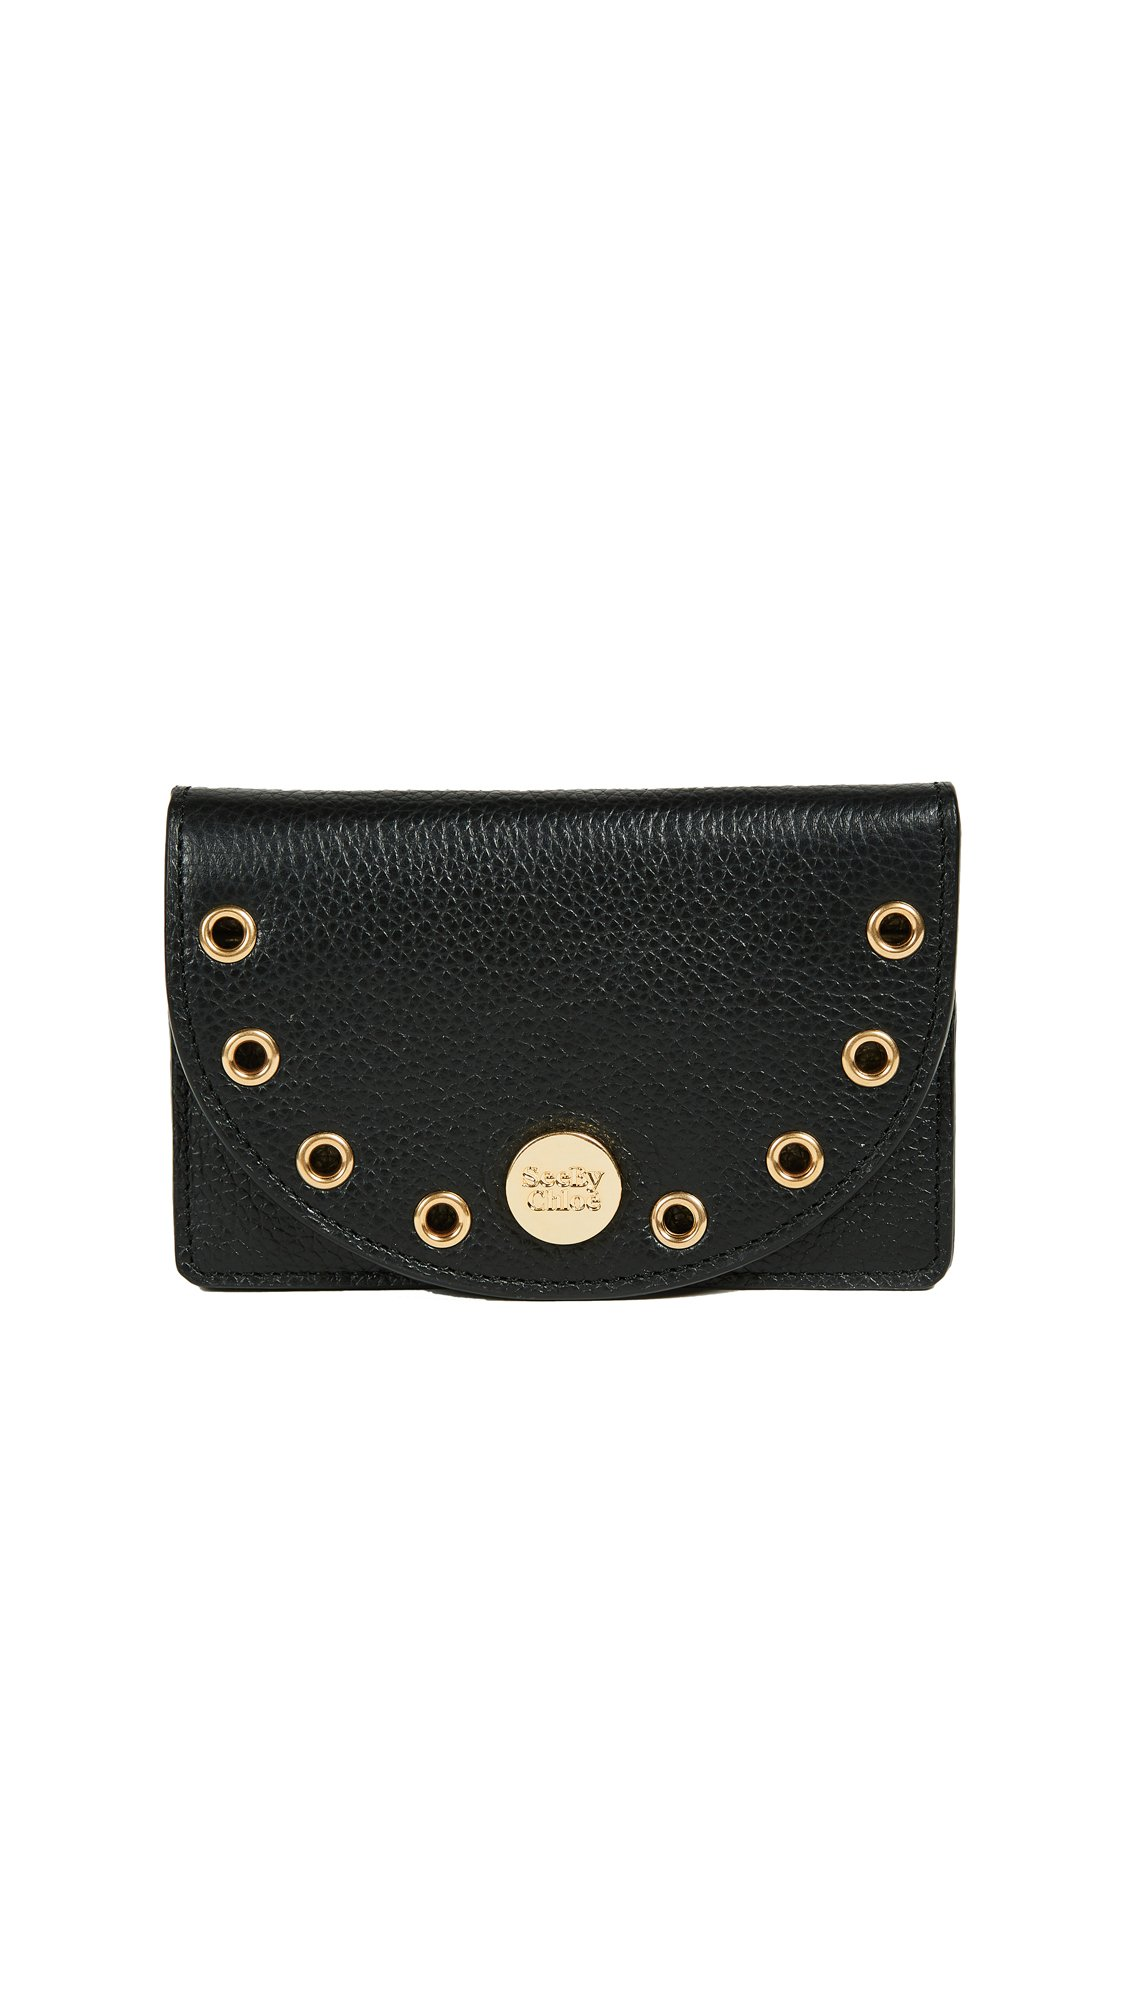 See by Chloe Women's Kriss Coin Purse, Black, One Size by See by Chloé